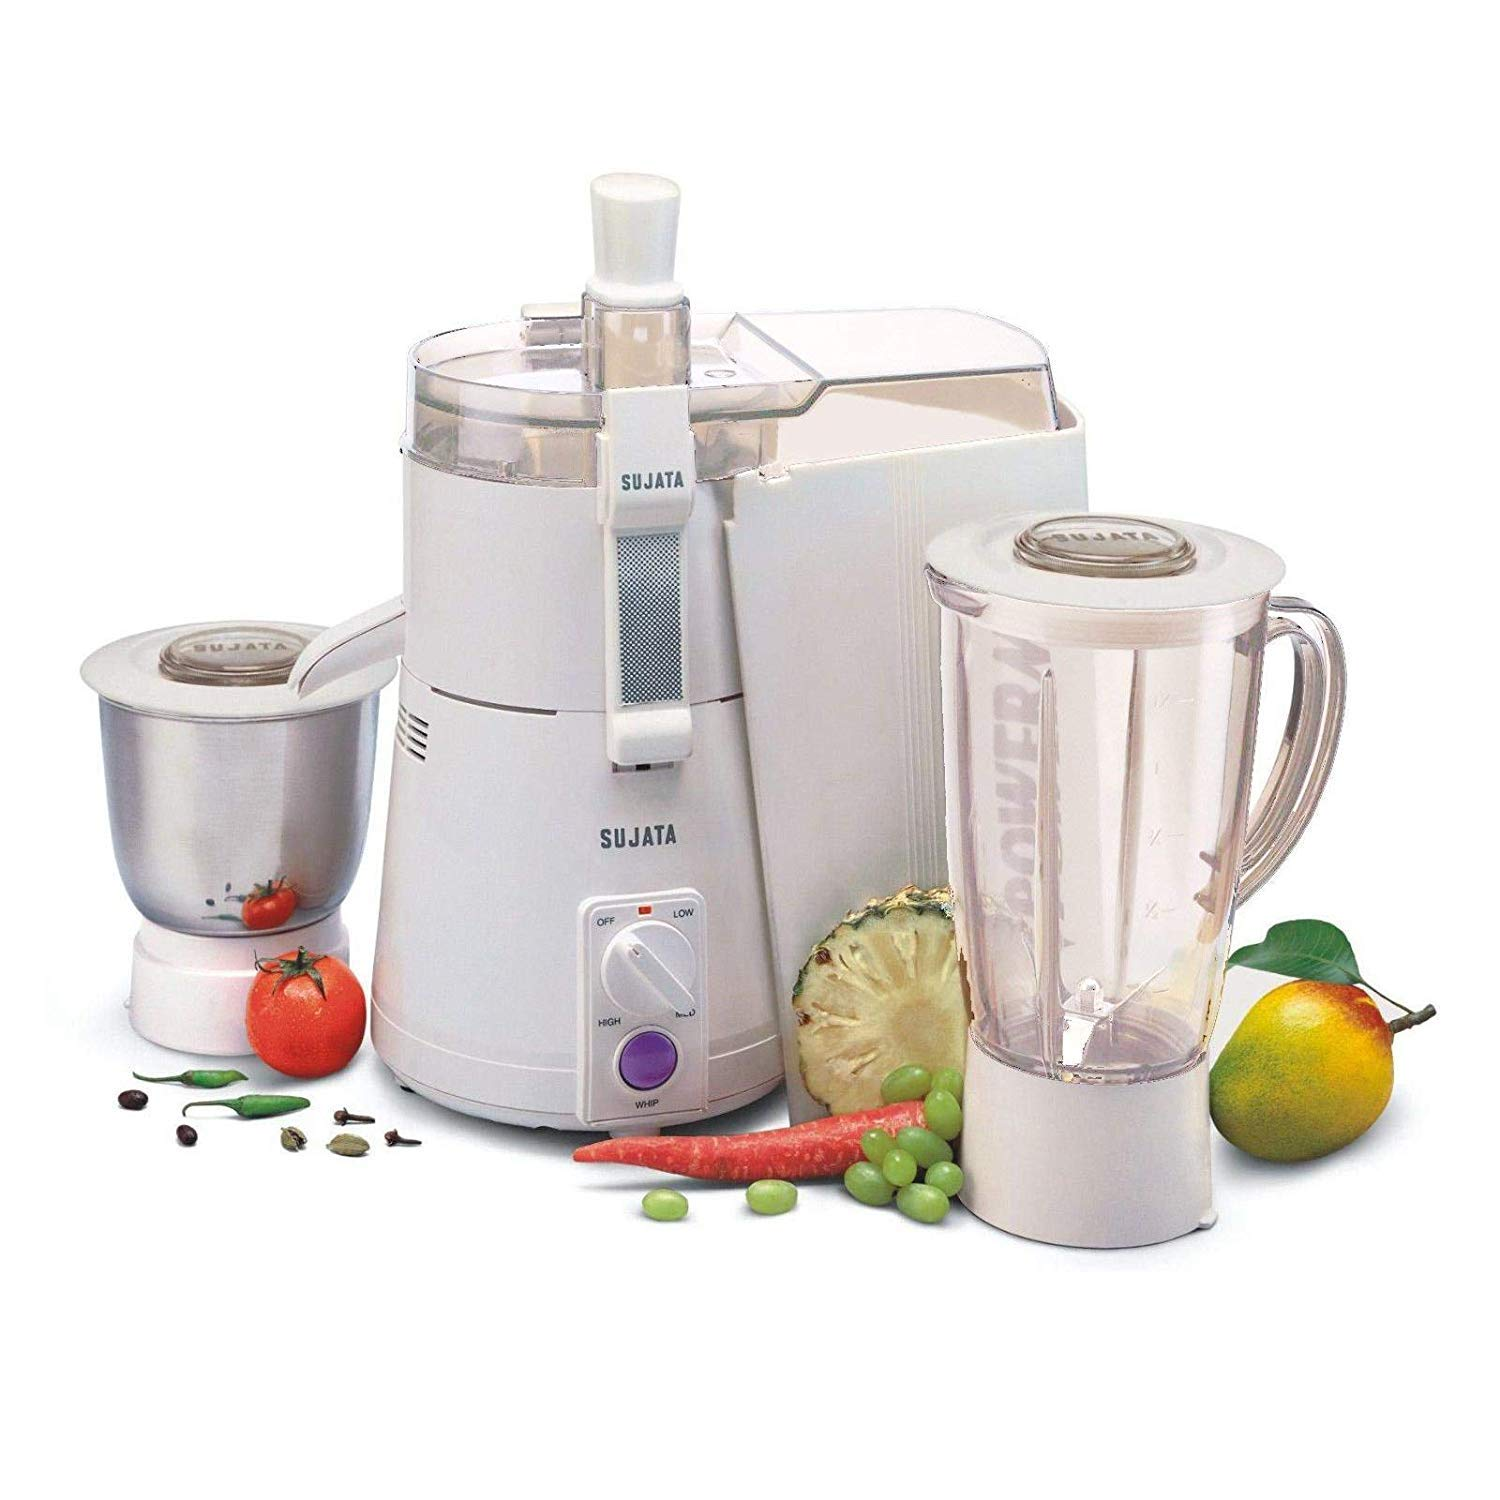 A white color juicer